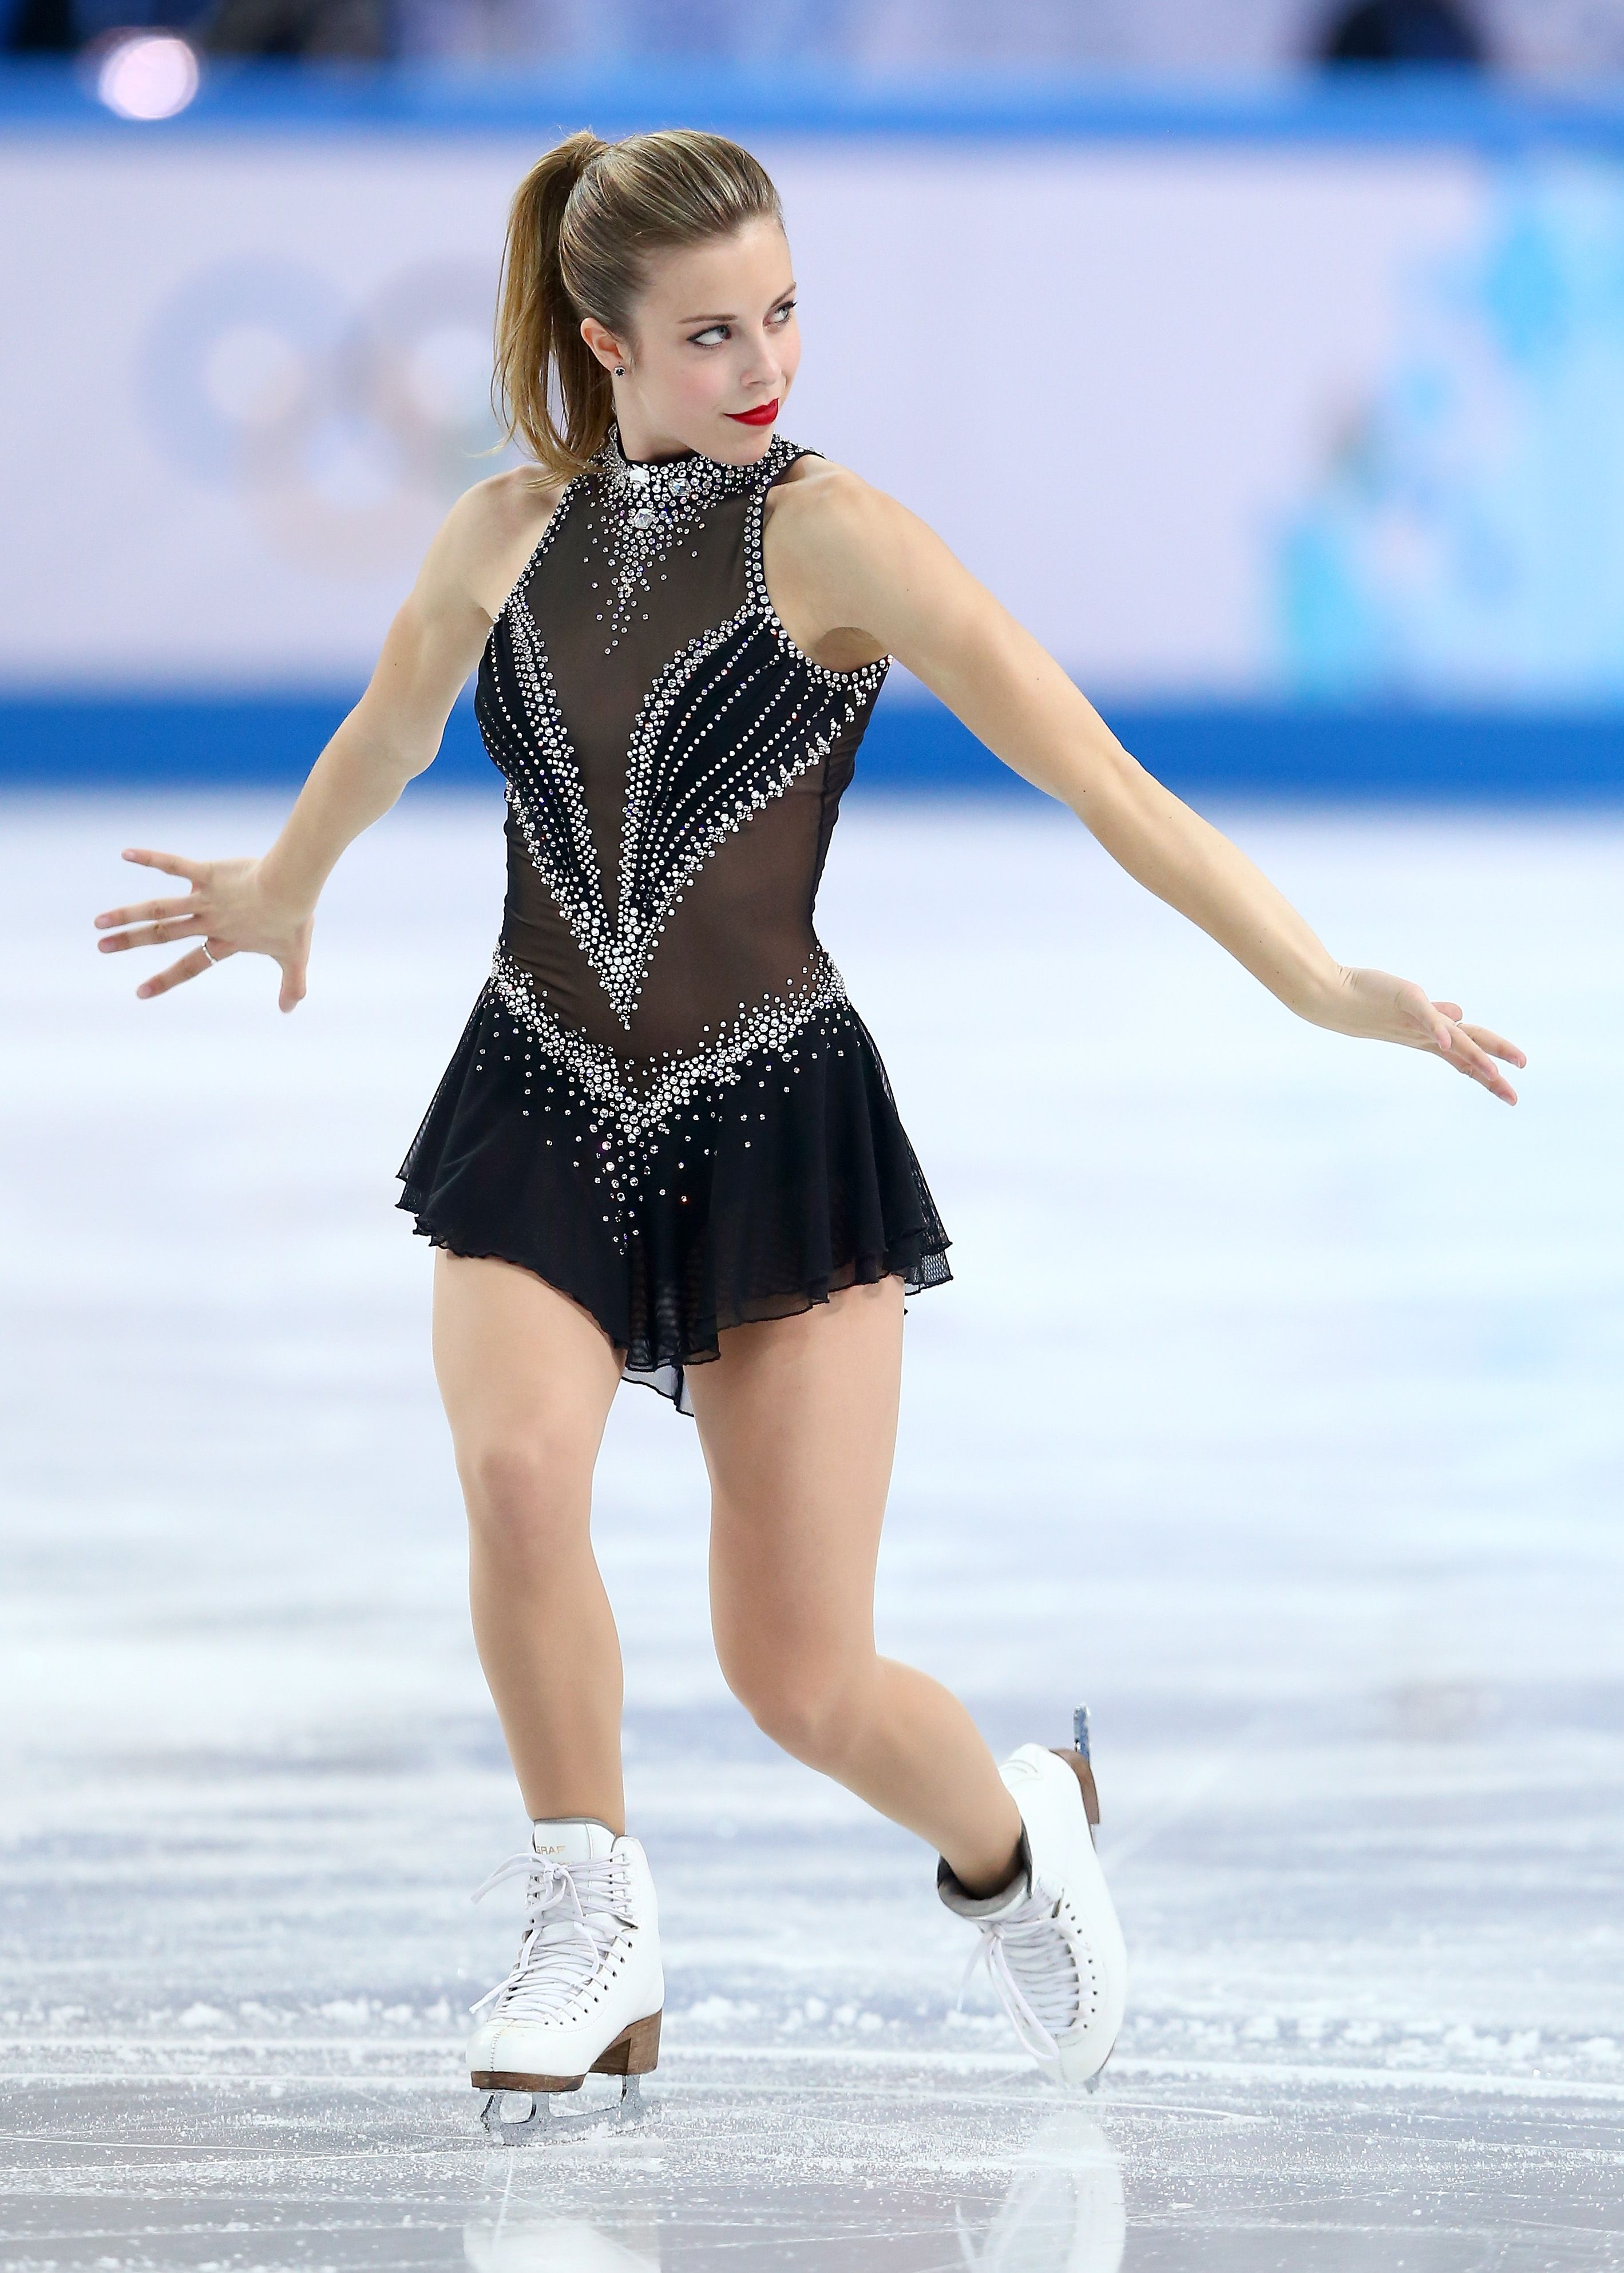 sc 1 st  Cosmopolitan & Best Figure Skating Outfits of All Time